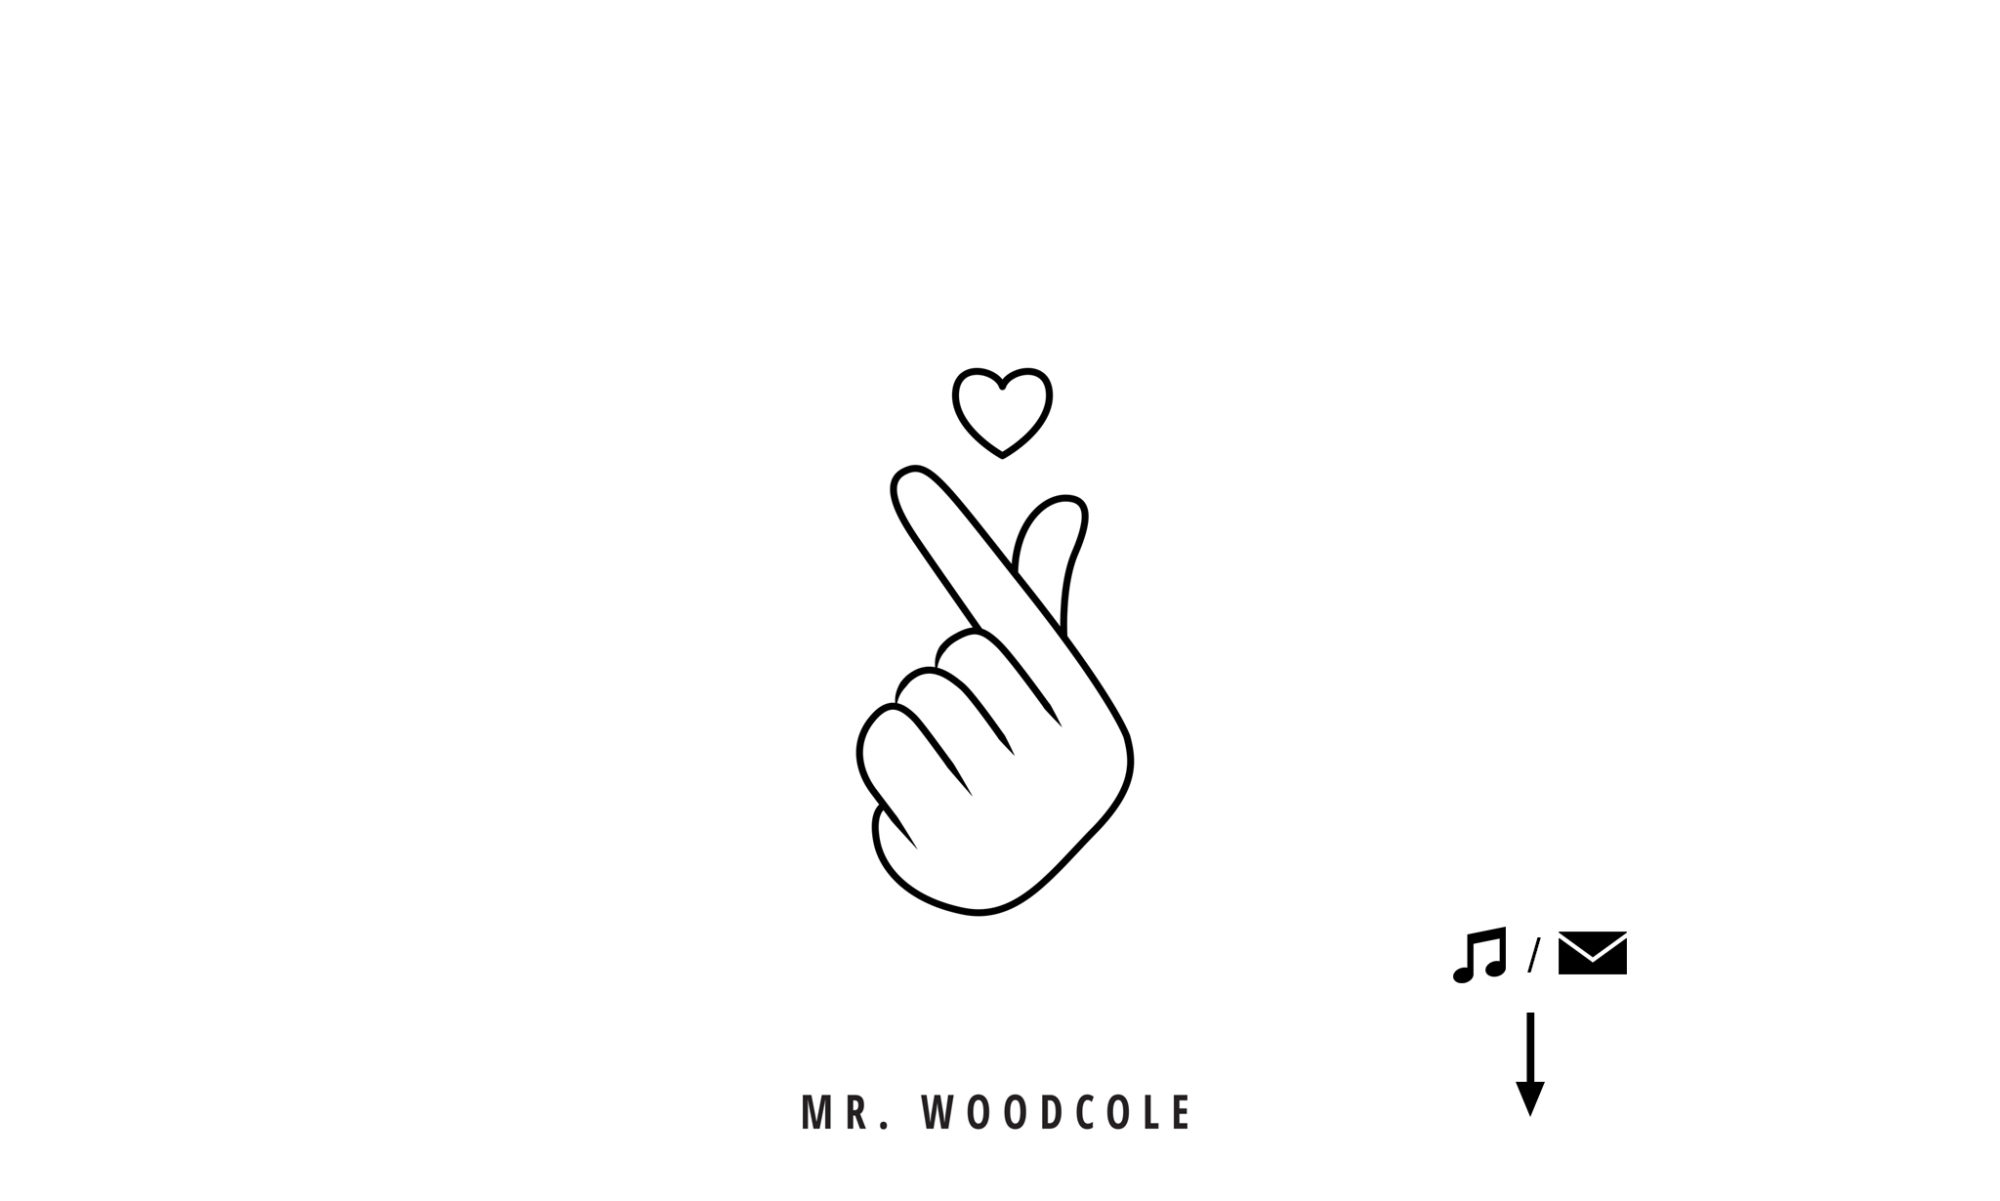 MR. WOODCOLE